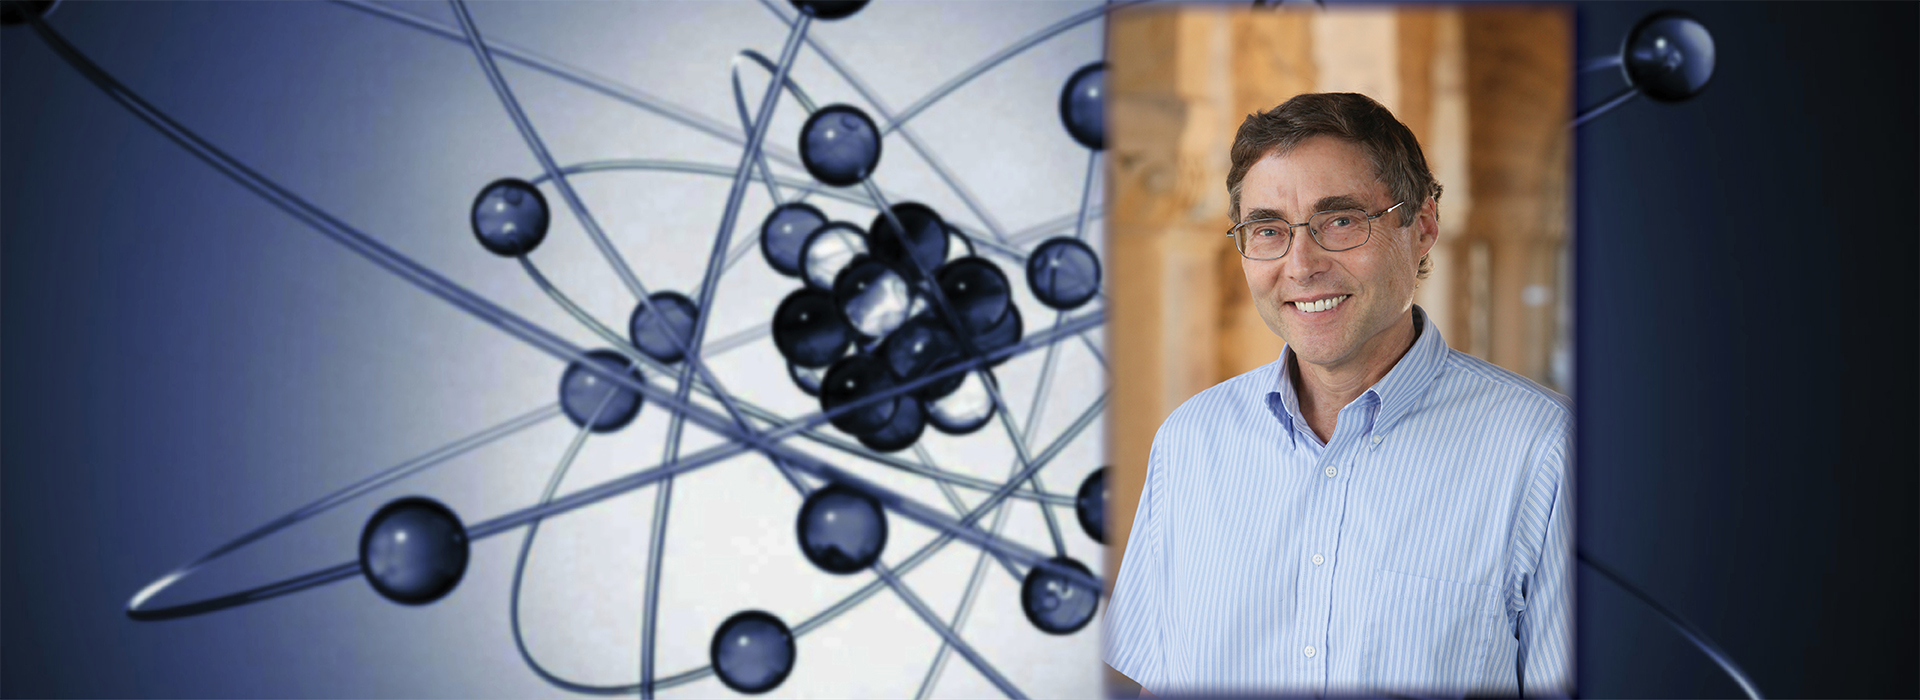 Leading physicist and Nobel laureate Carl Wieman to deliver lecture at Cal State San Bernardino